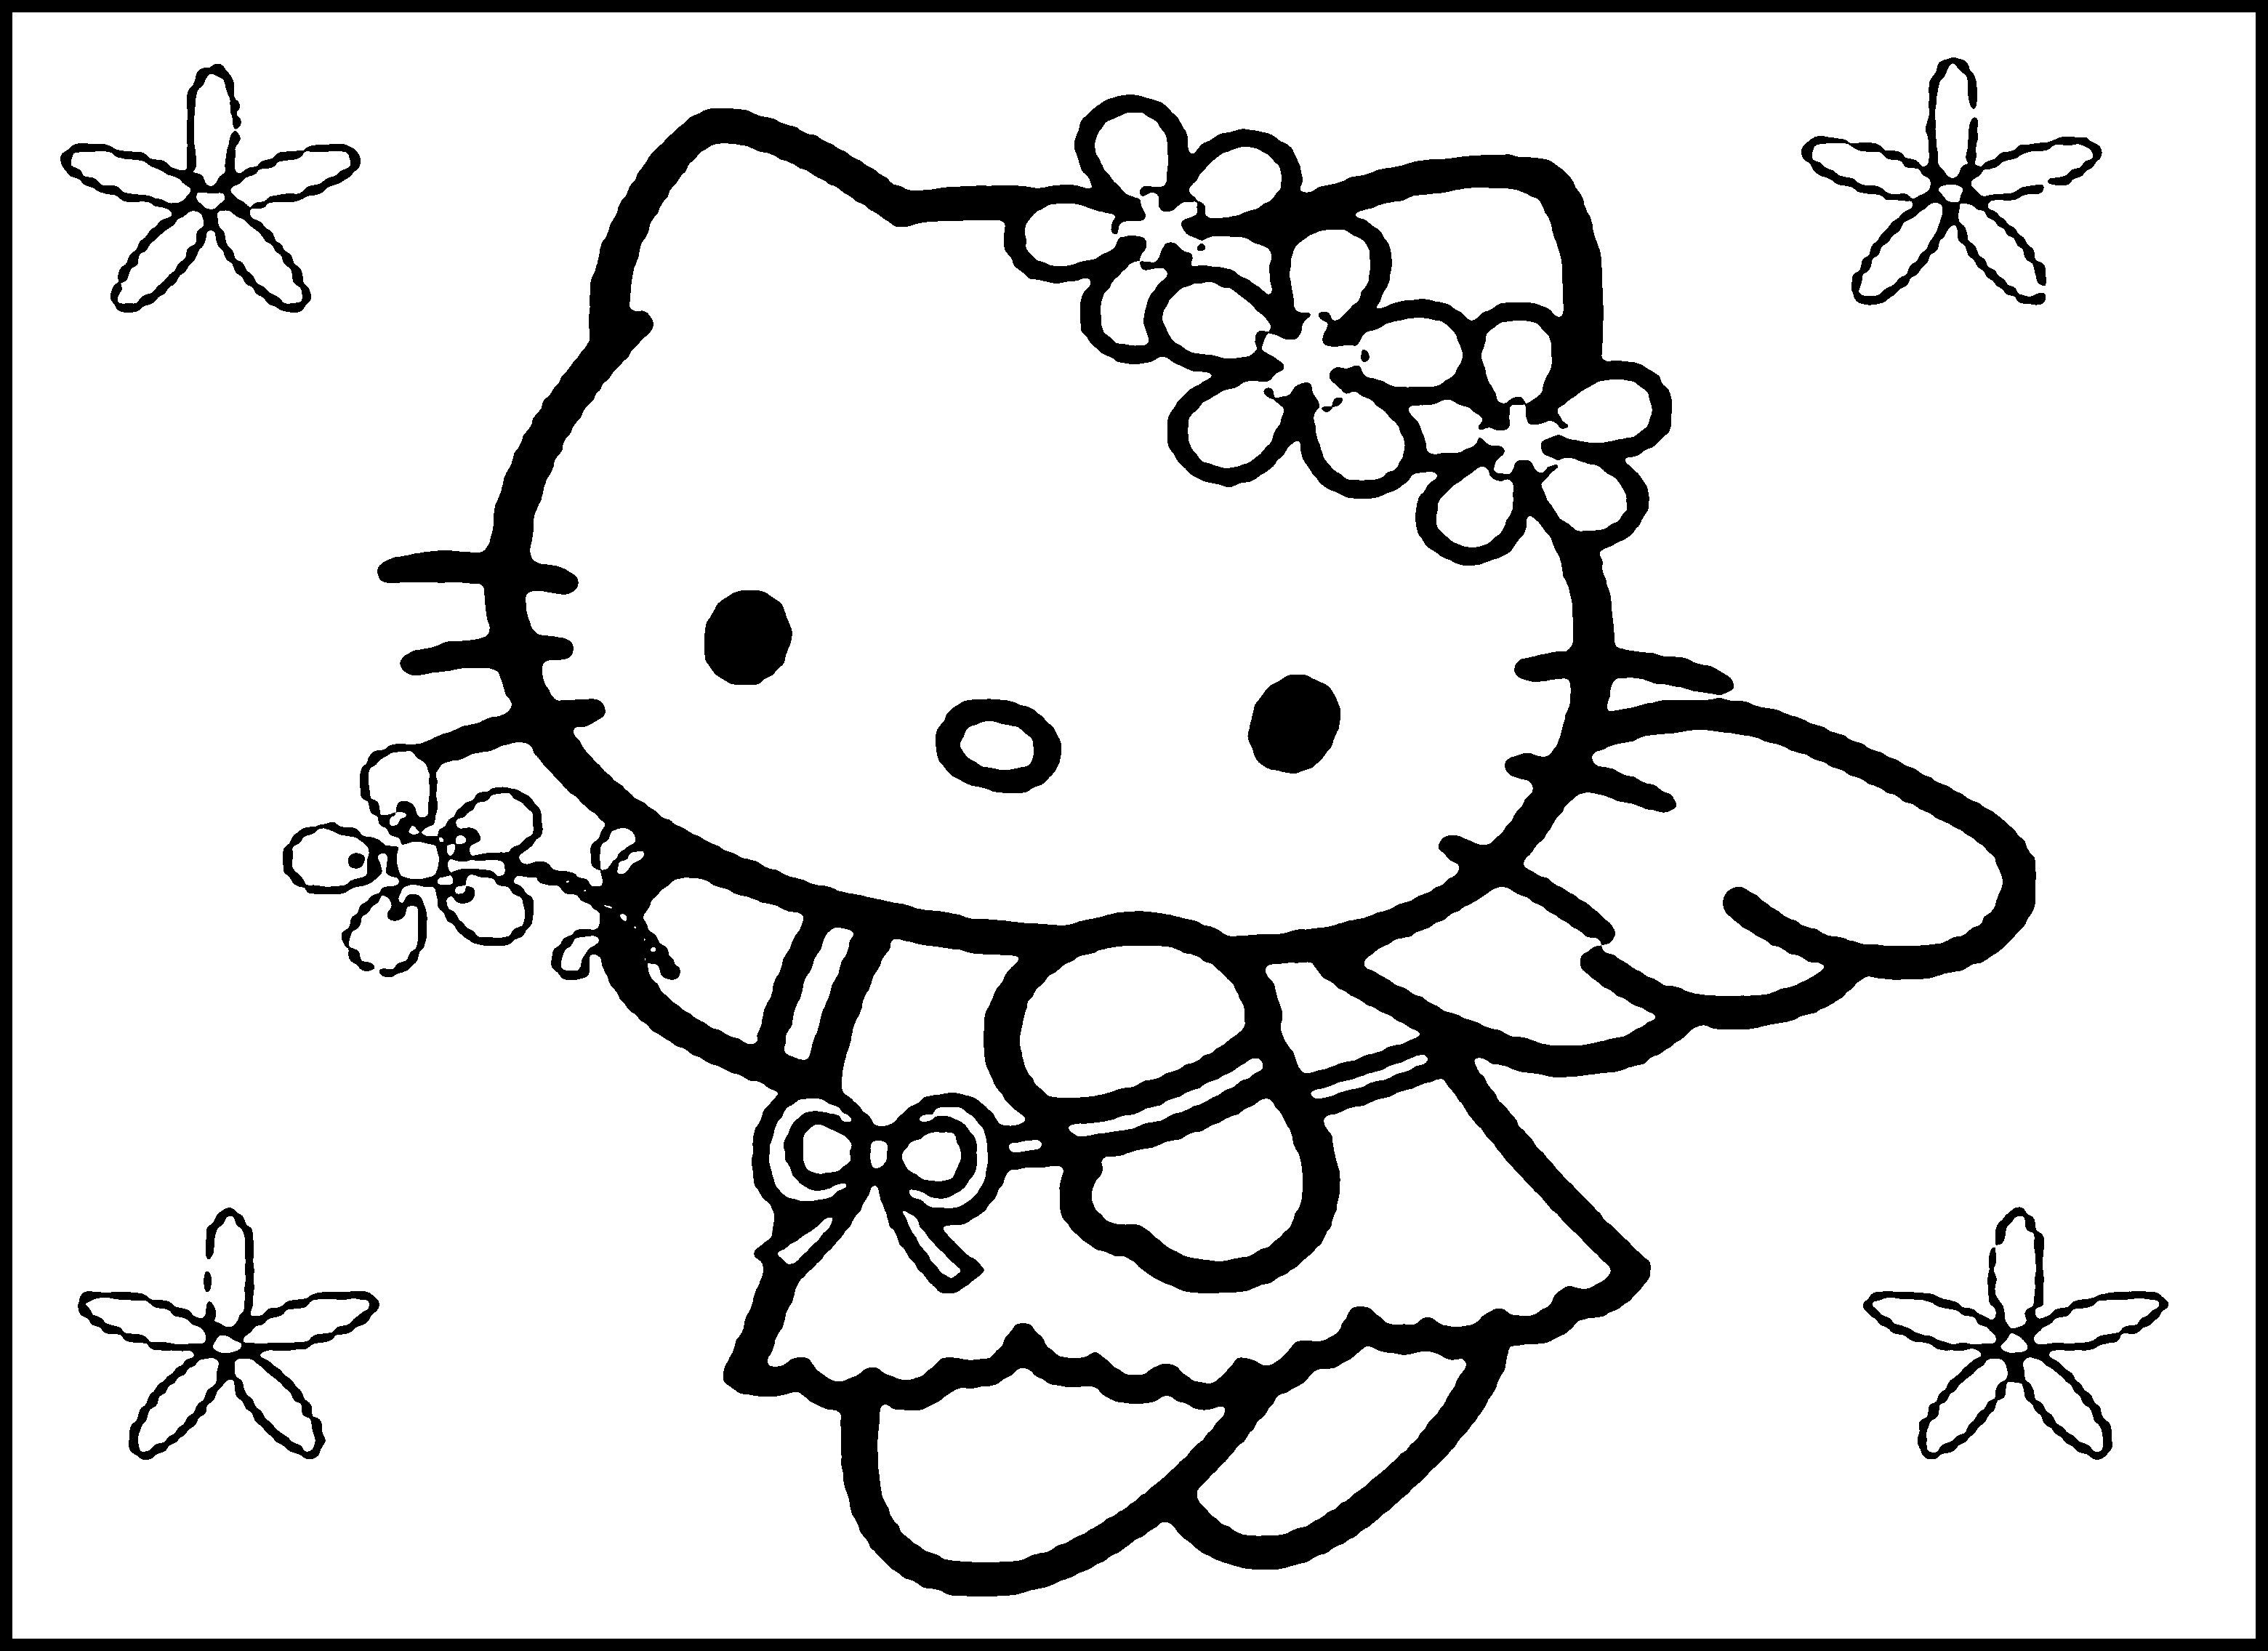 Hello Kitty Mini Coloring Pages - Coloring pages allow kids to